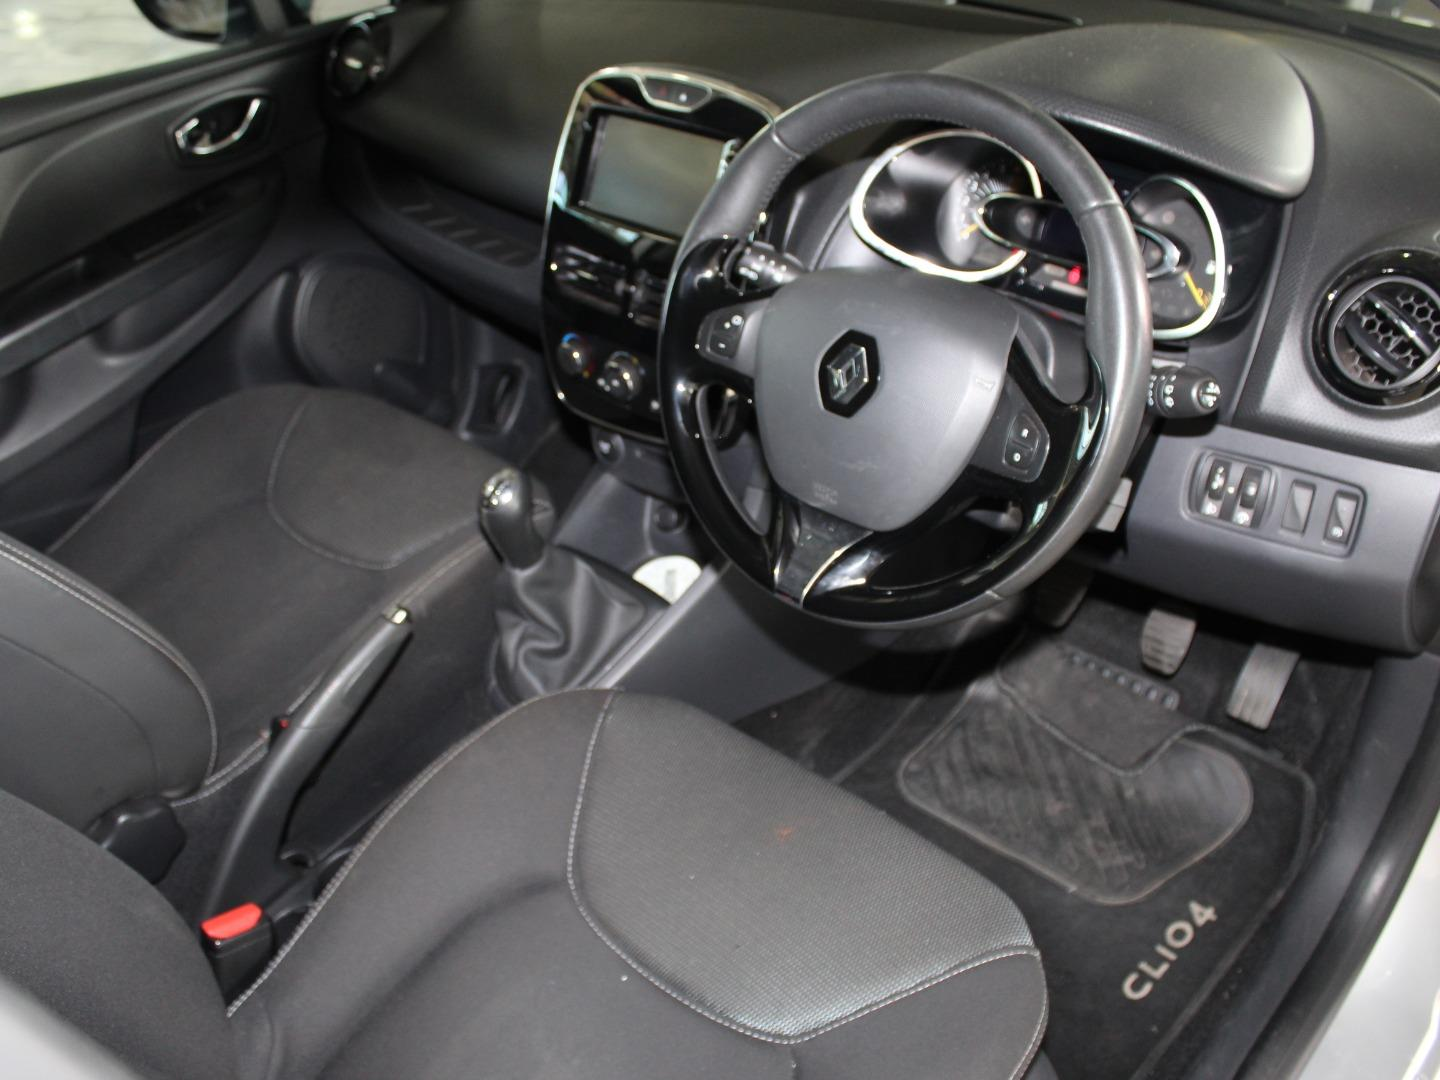 2013 Renault Clio 66kW Turbo Expression- Picture 3